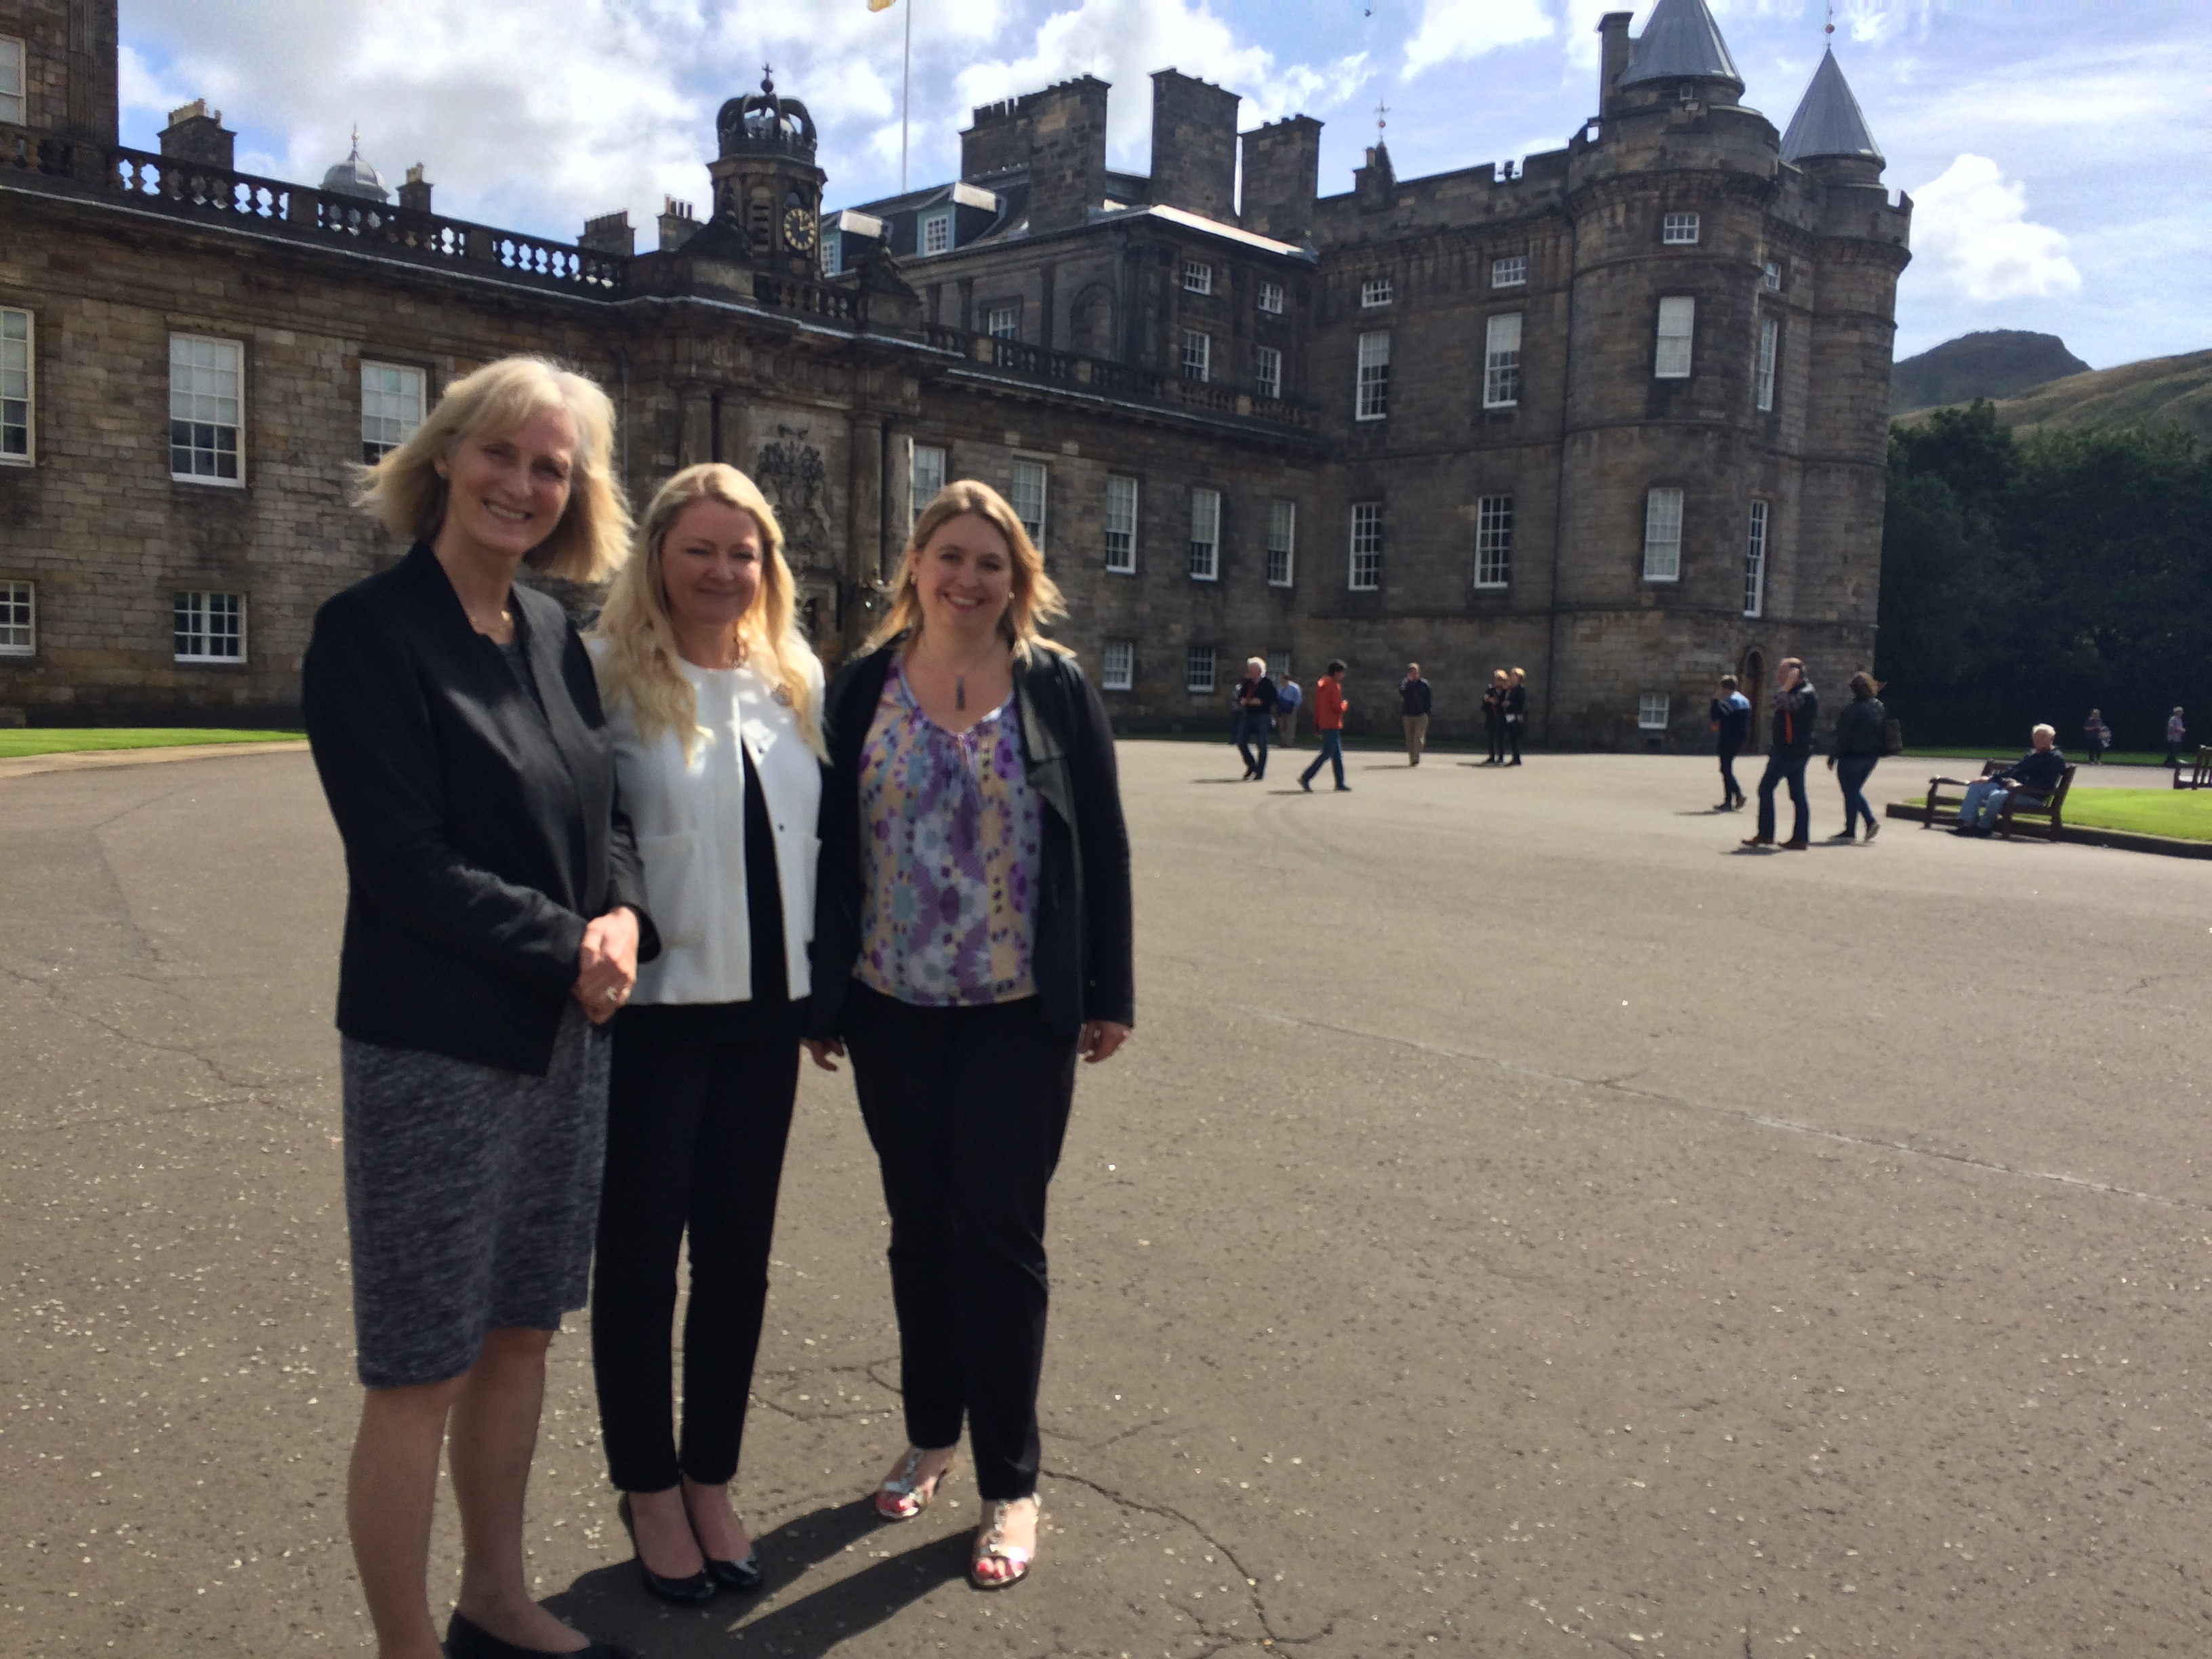 Culture Secretary Karen Bradley at Holyrood Palace